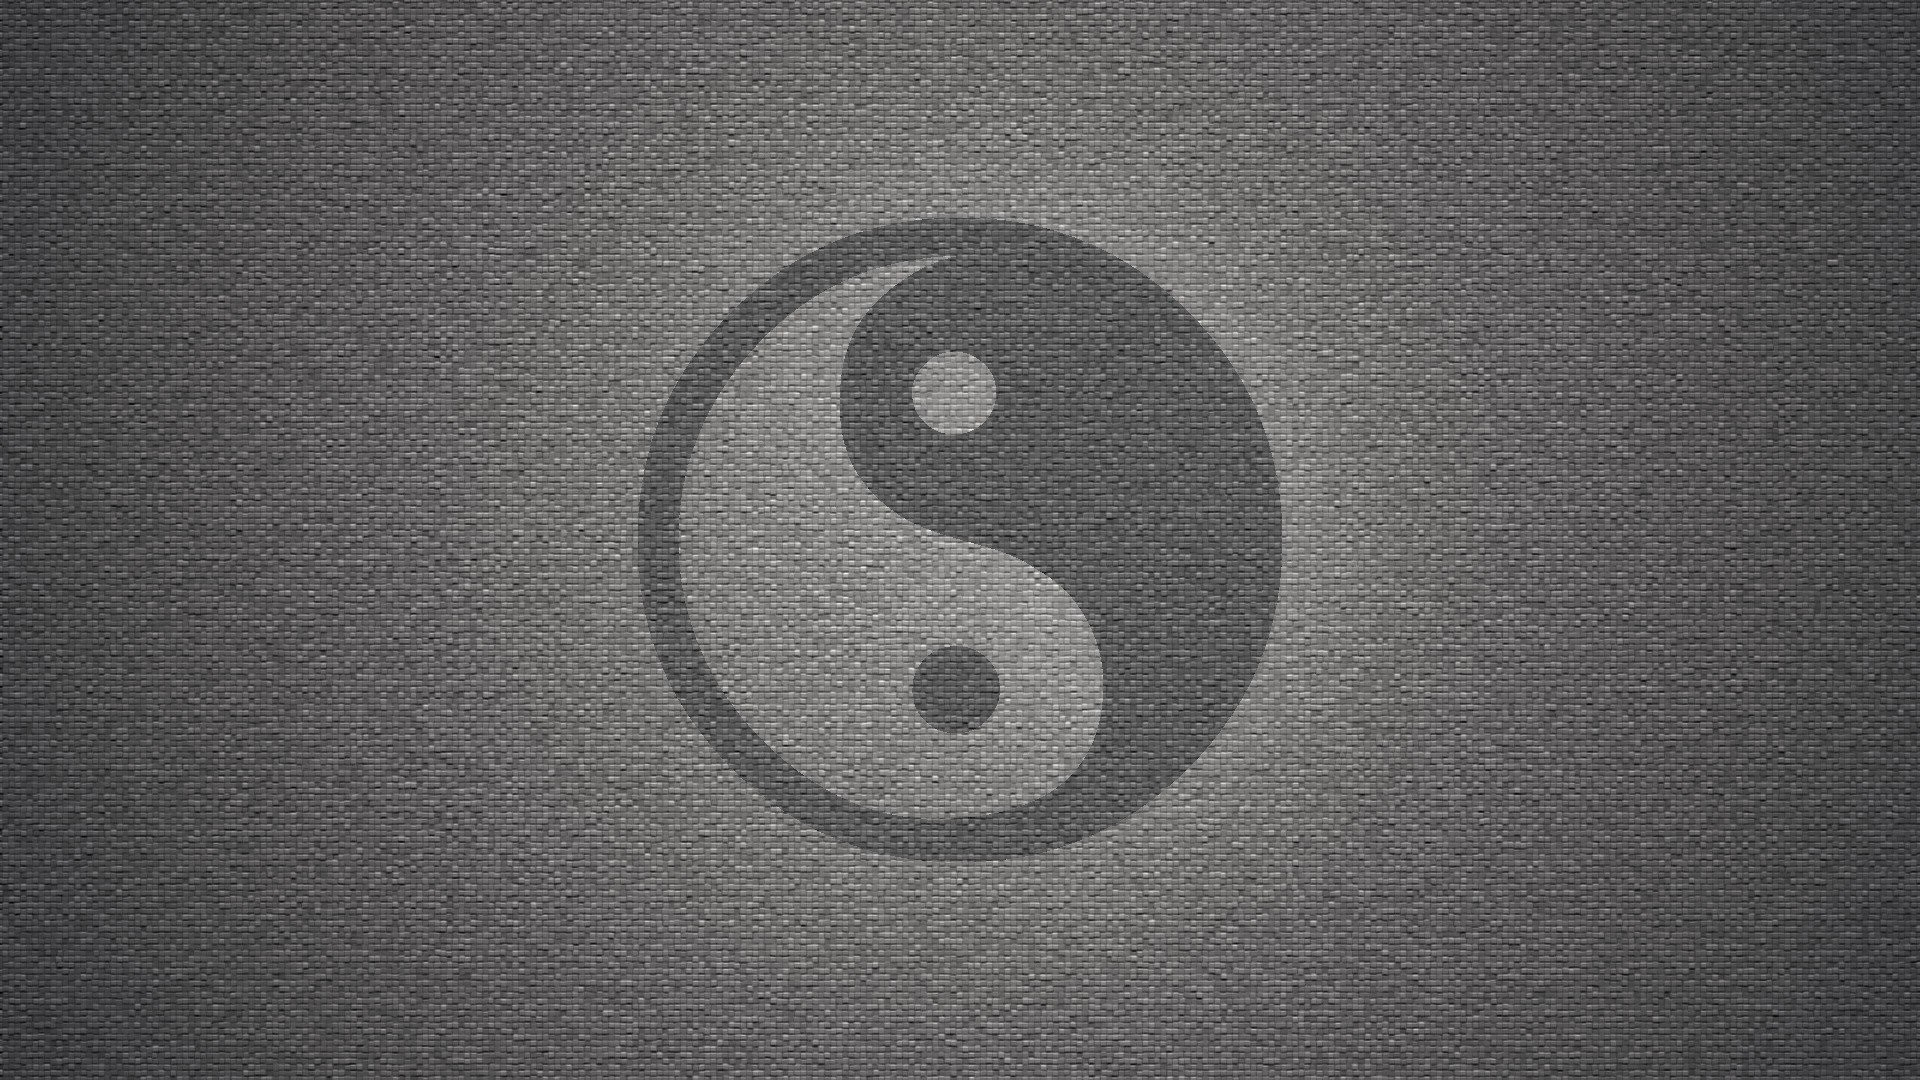 Wall yin yang symbol textures grayscale backgrounds symbols wallpaper |  | 288519 | WallpaperUP